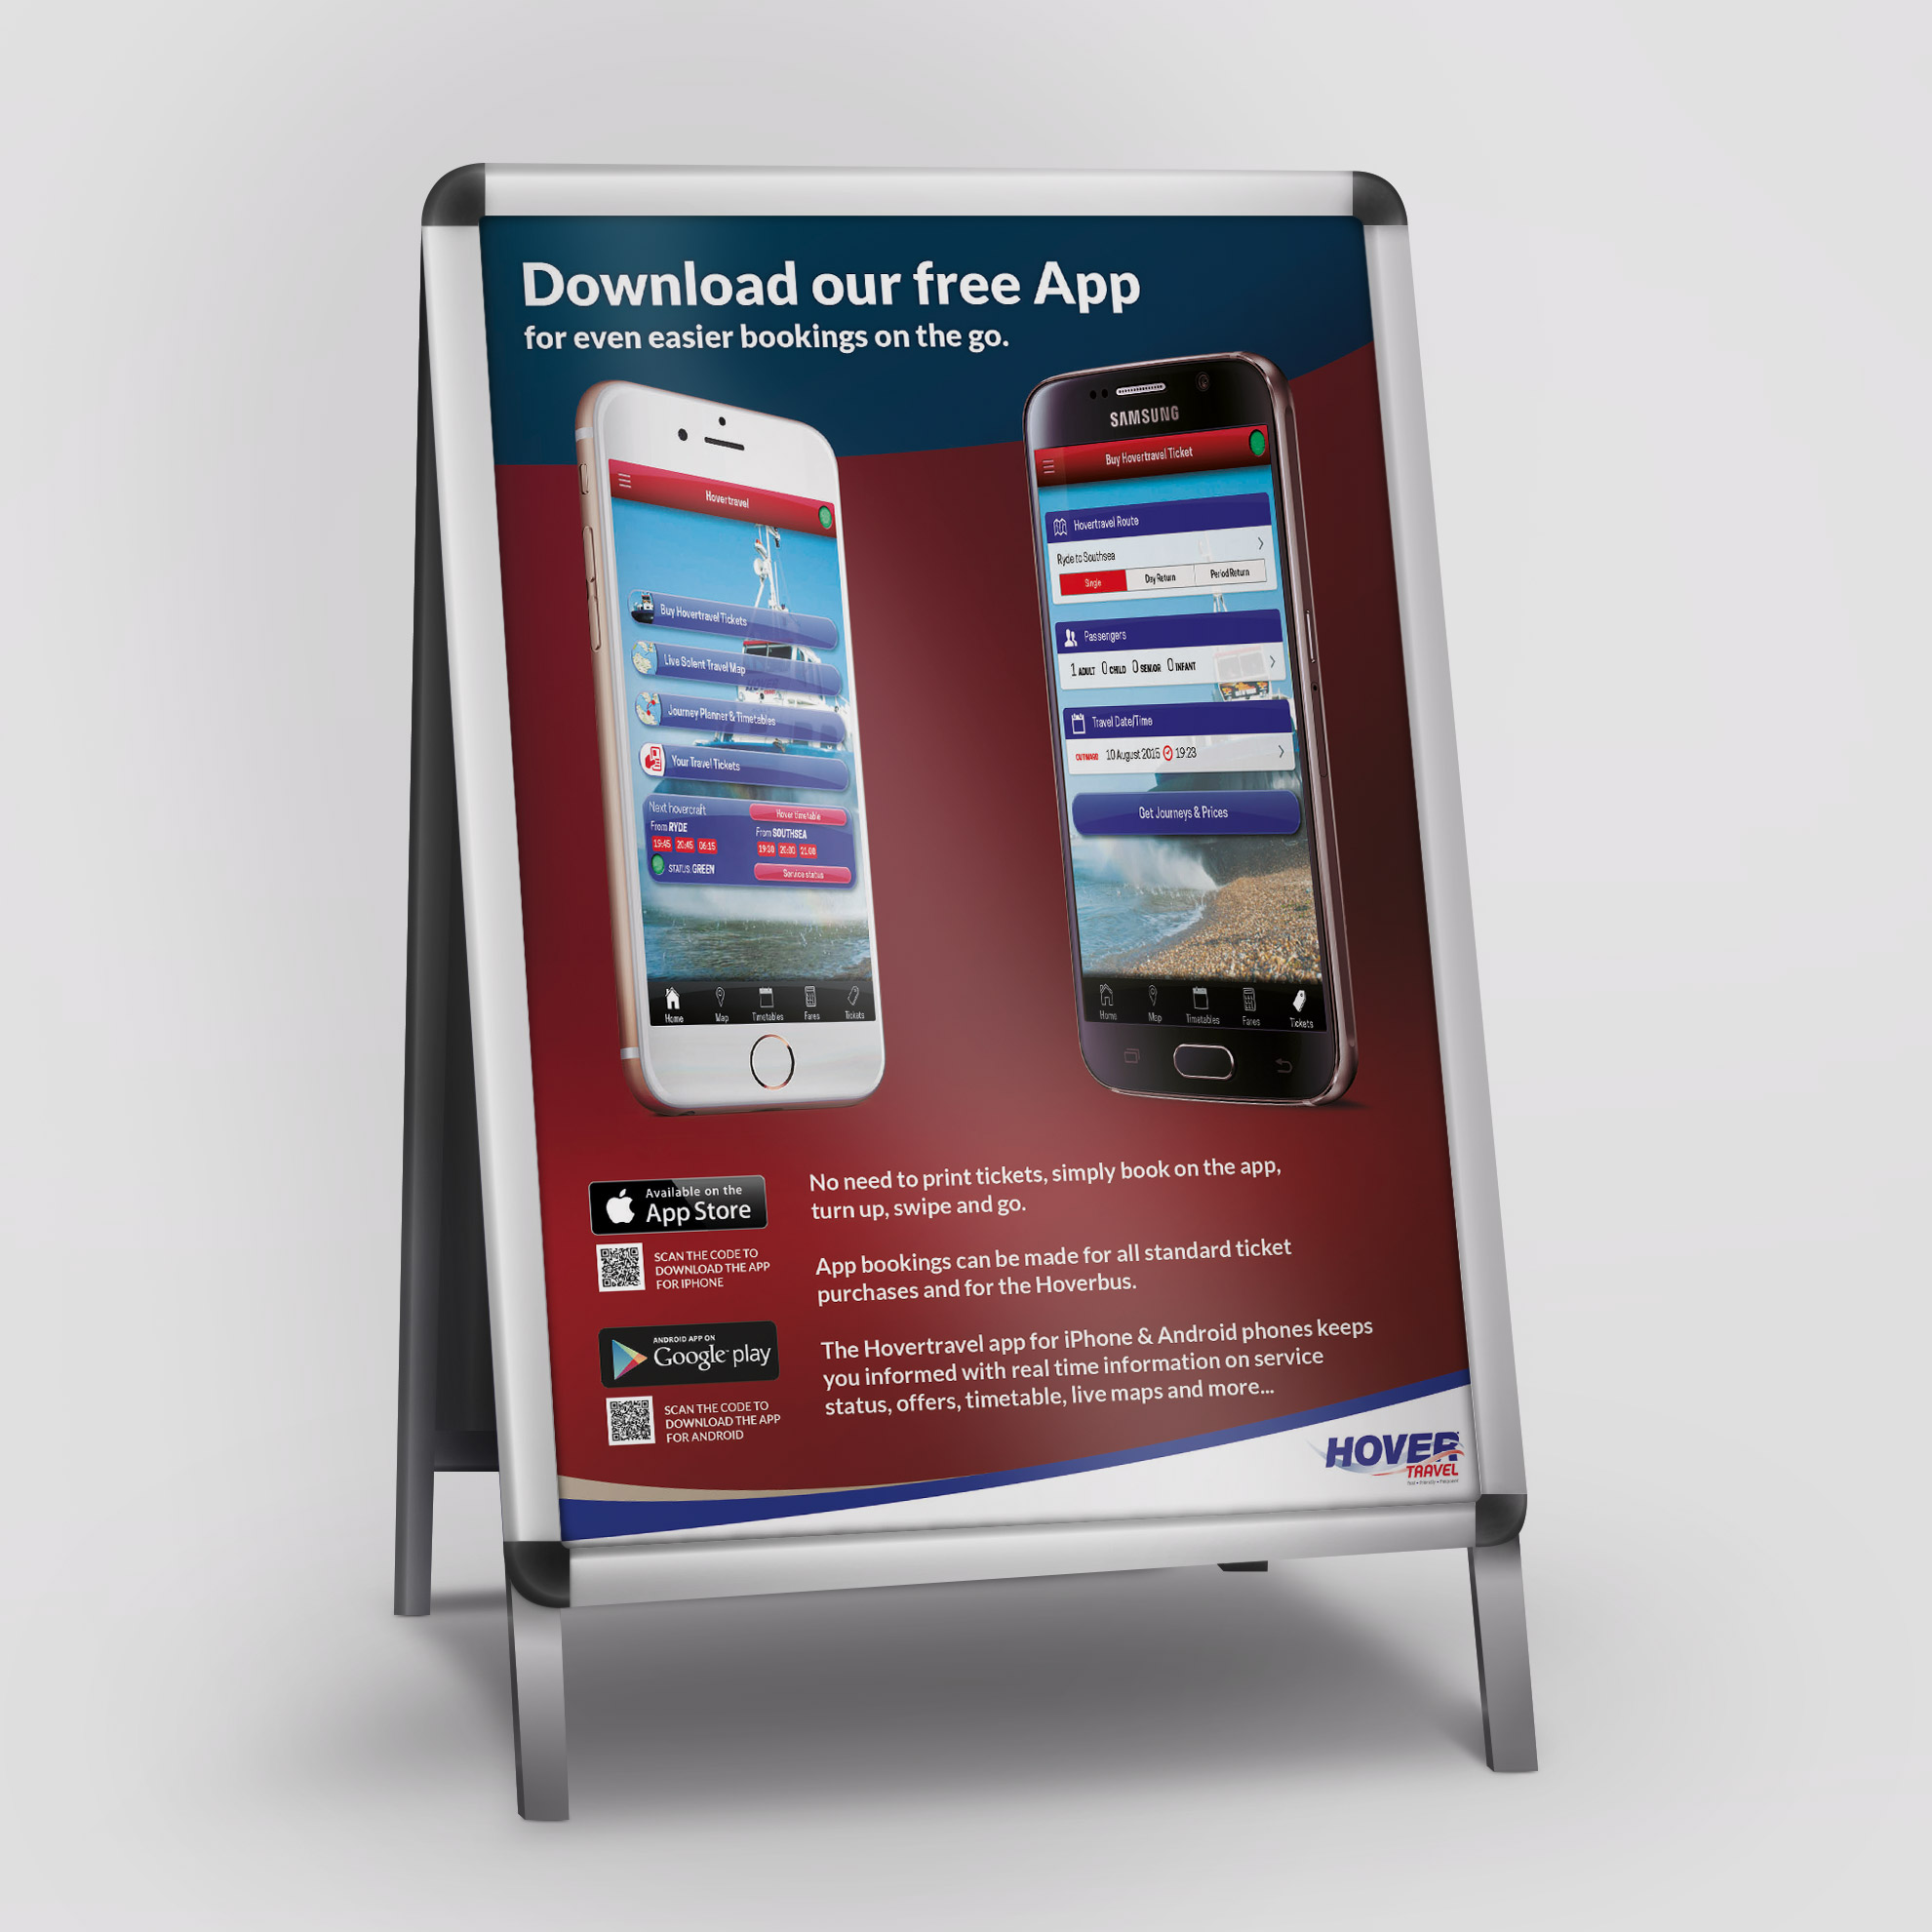 Hovertravel iPhone and Android app promotion A1 poster design